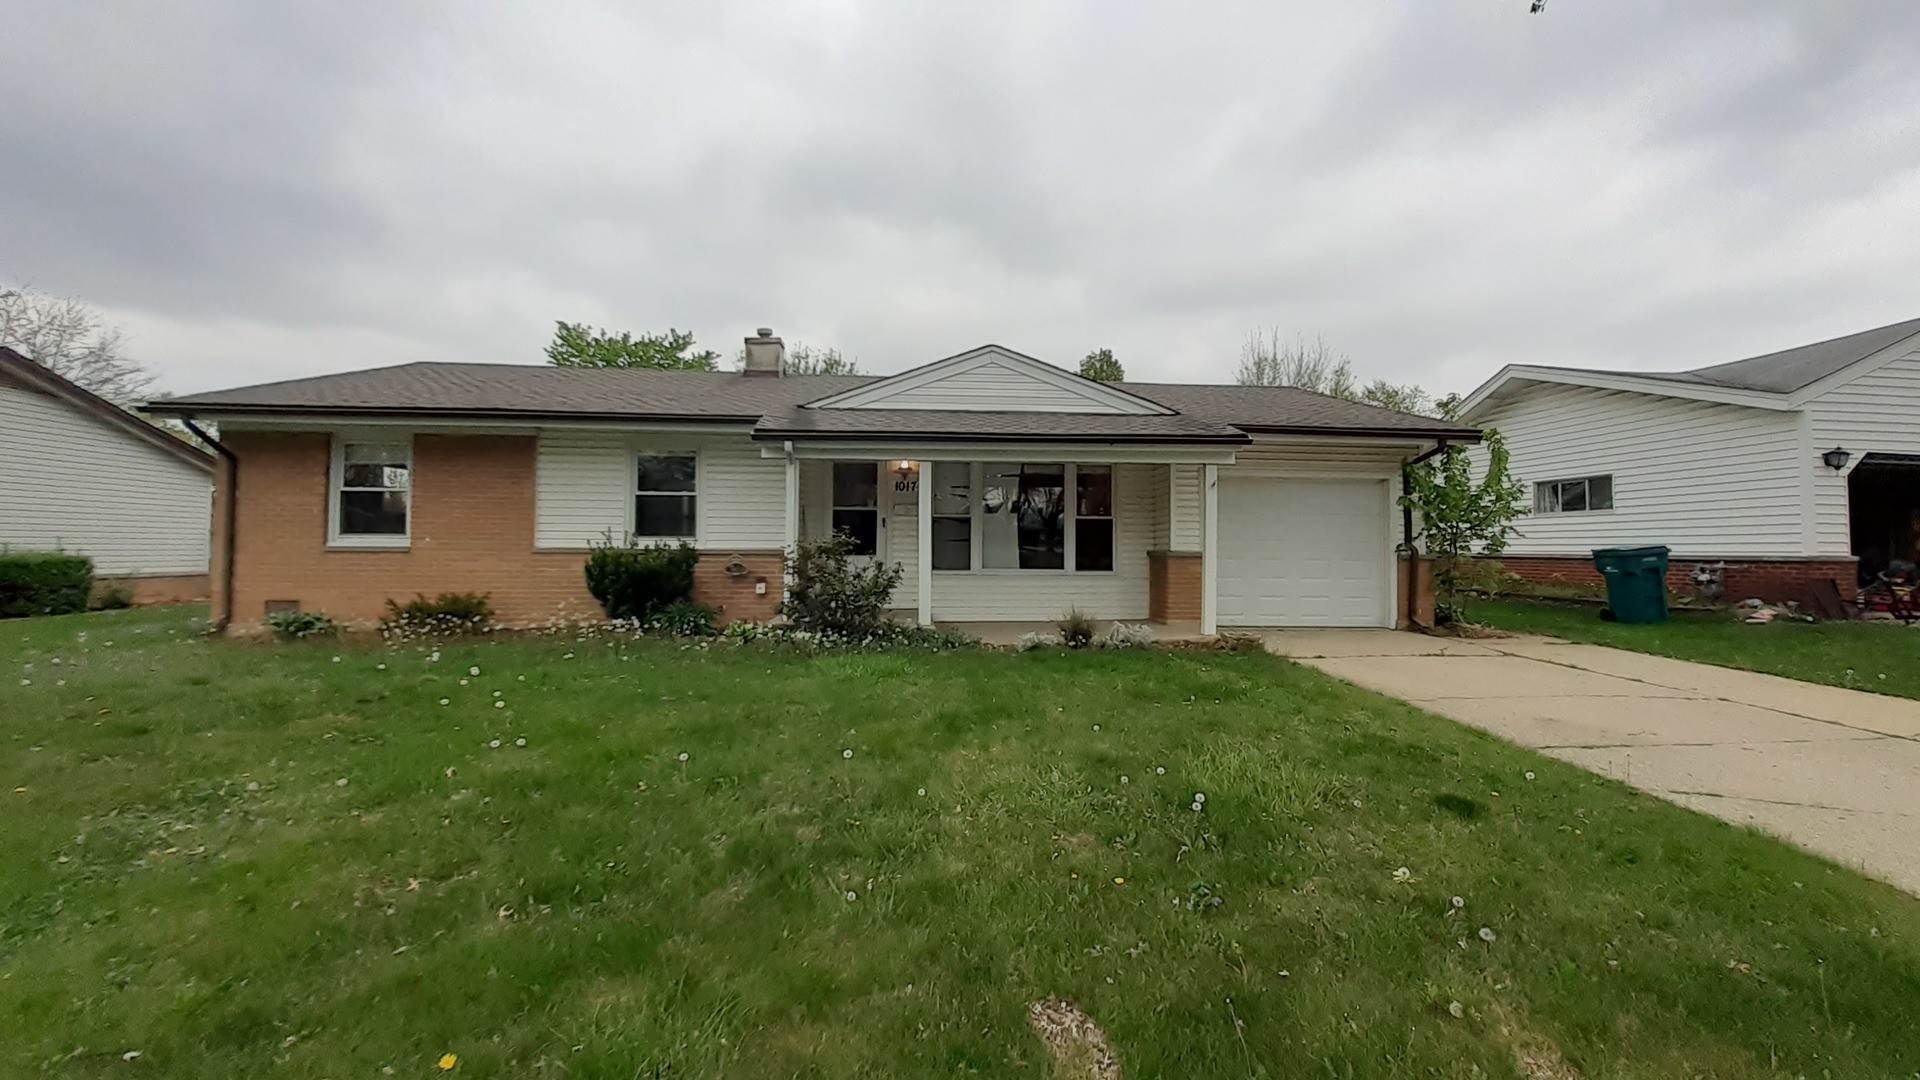 住宅租賃 在 1017 Elmwood Lane Elk Grove Village, 伊利諾斯州 60007 美國